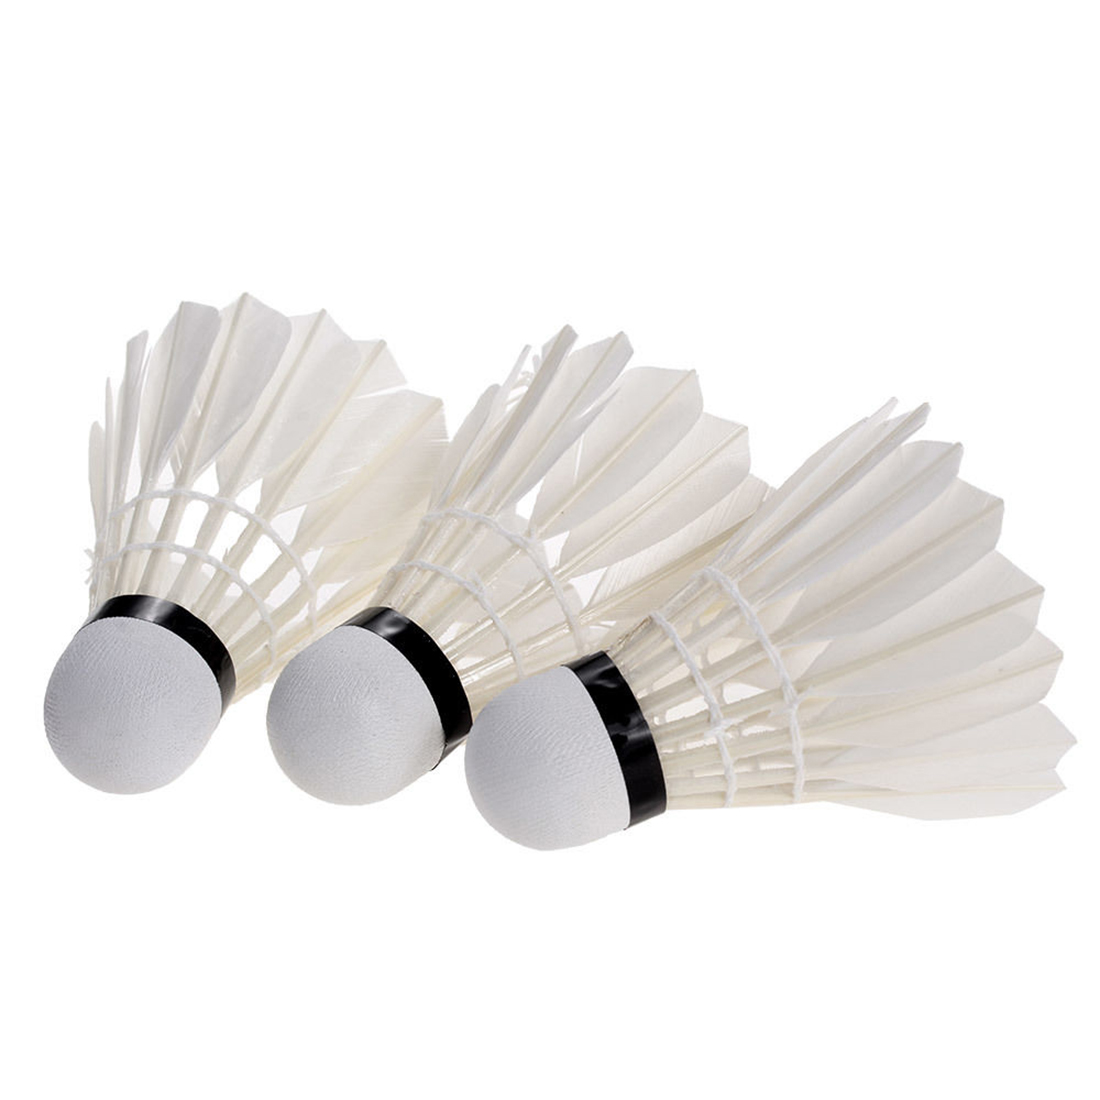 3 Pcs Portable White Duck Feather Shuttlecock Training Badminton Balls Shuttlecocks Sport Products